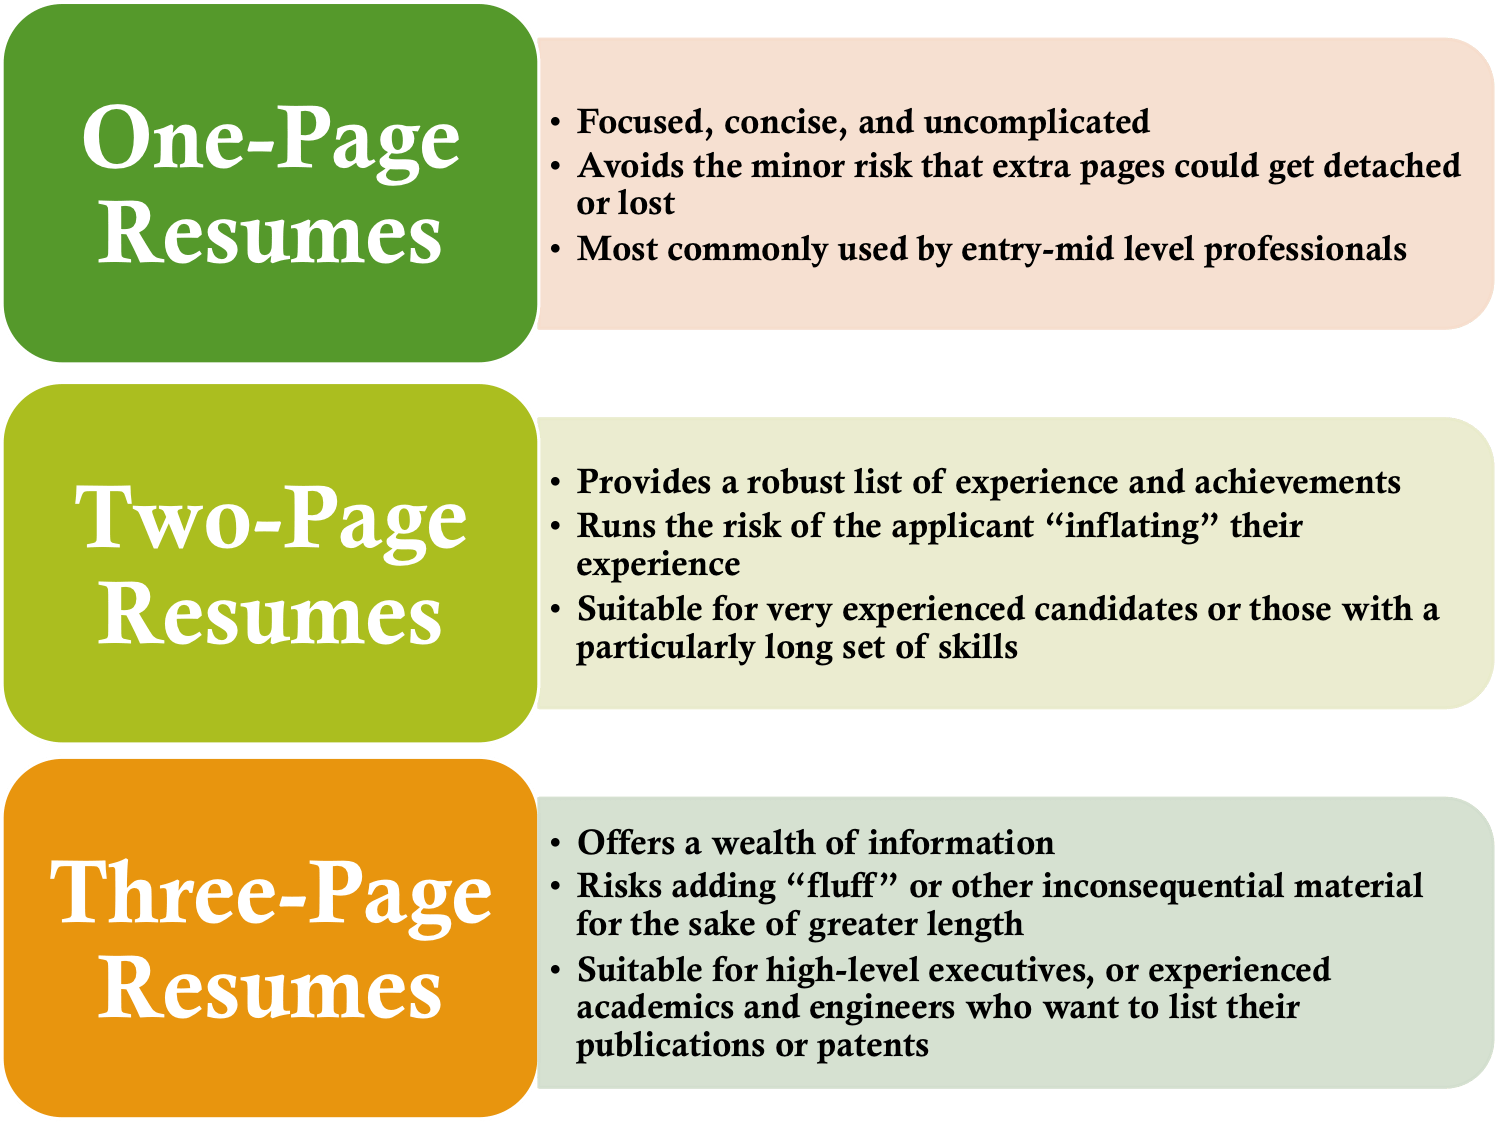 mba resume length best resume and all letter for cv mba resume length mba definition program length and careers thoughtco tag resume guidelines resume ideas resume